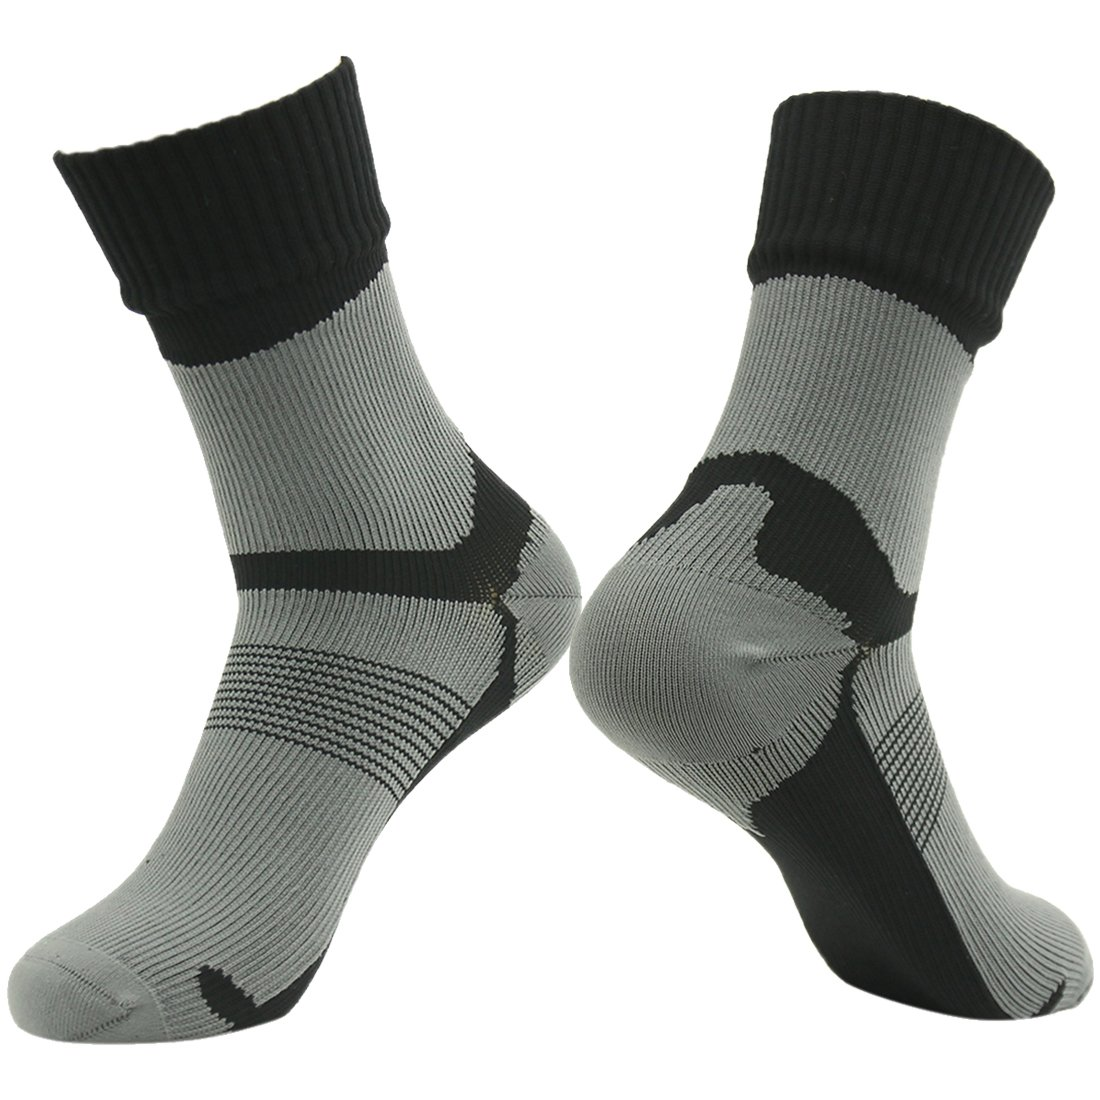 RANDY SUN Waterproof Nylon Socks, Men's Dri-Fit High Cushioned Socks Thermal Comfort Hiker Crew Length Socks for Special Operation Black Grey by RANDY SUN